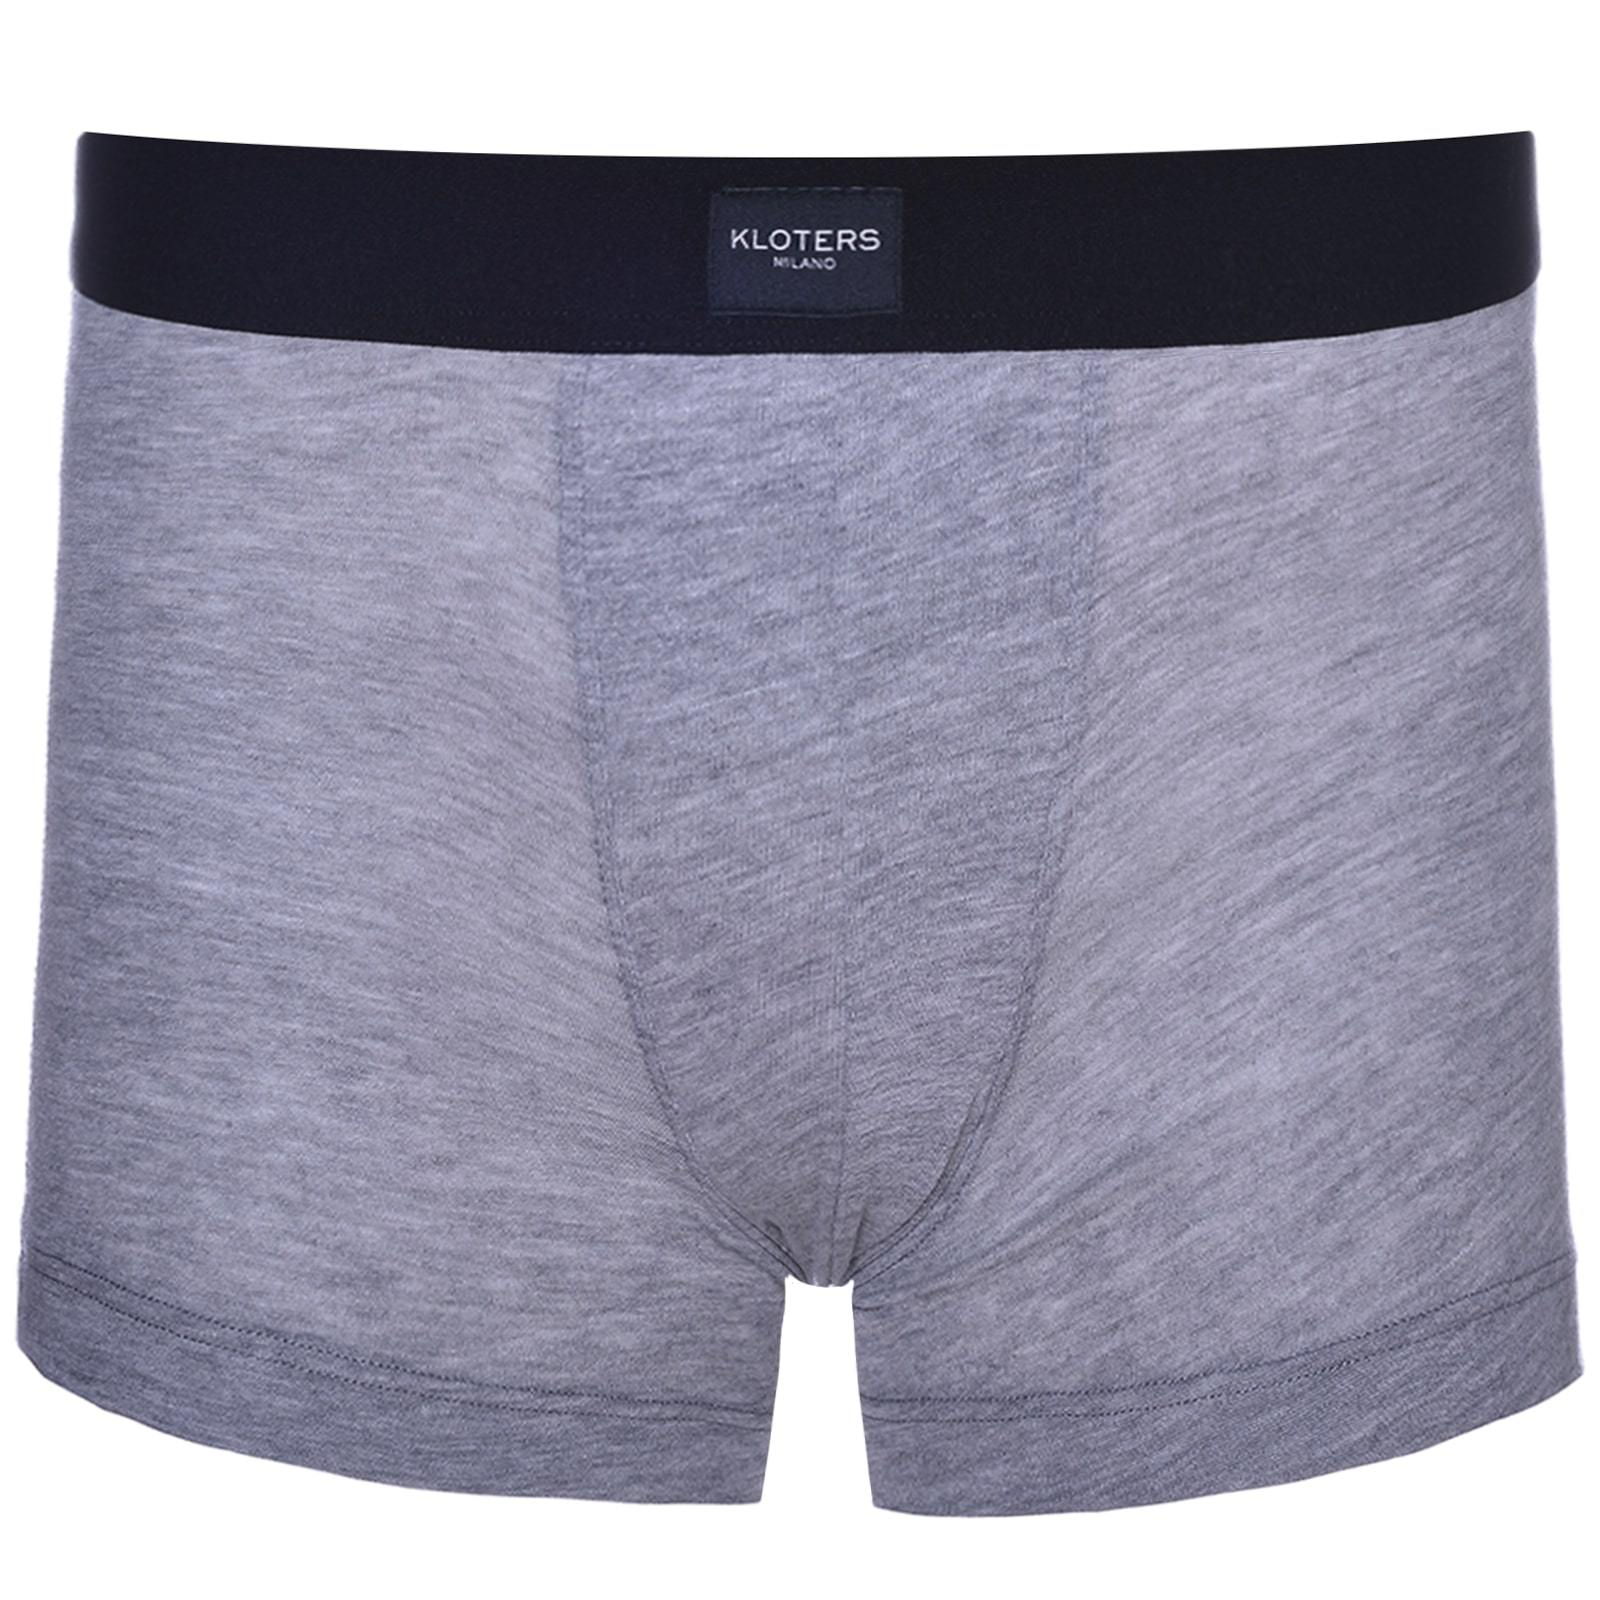 Boxer Briefs - Heather Grey Boxer Briefs Pack